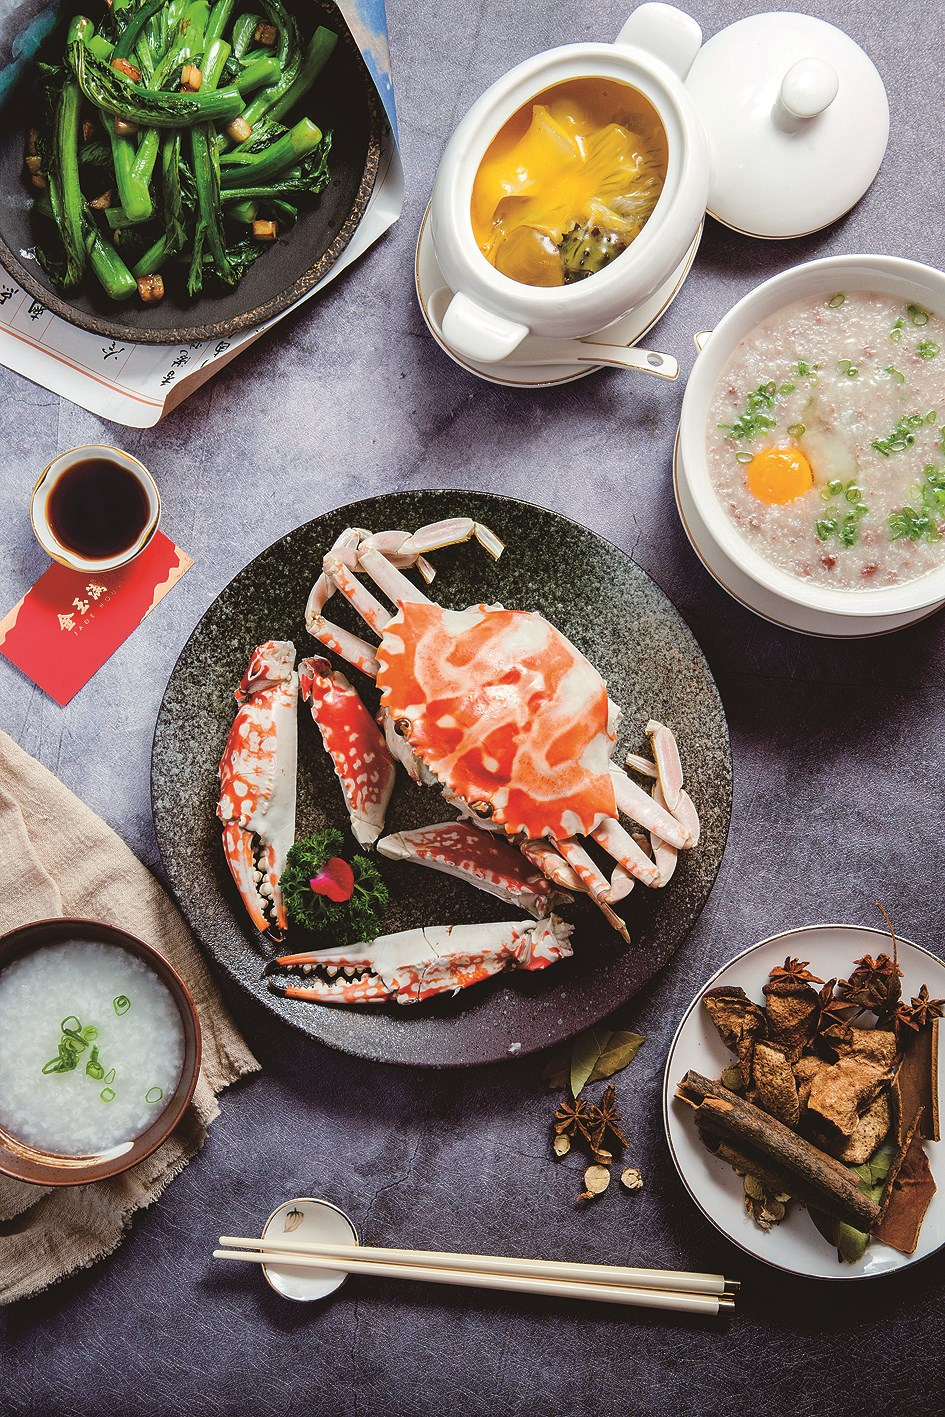 Since Chaozhou is a coastal region, seafood and vegetables feature well.